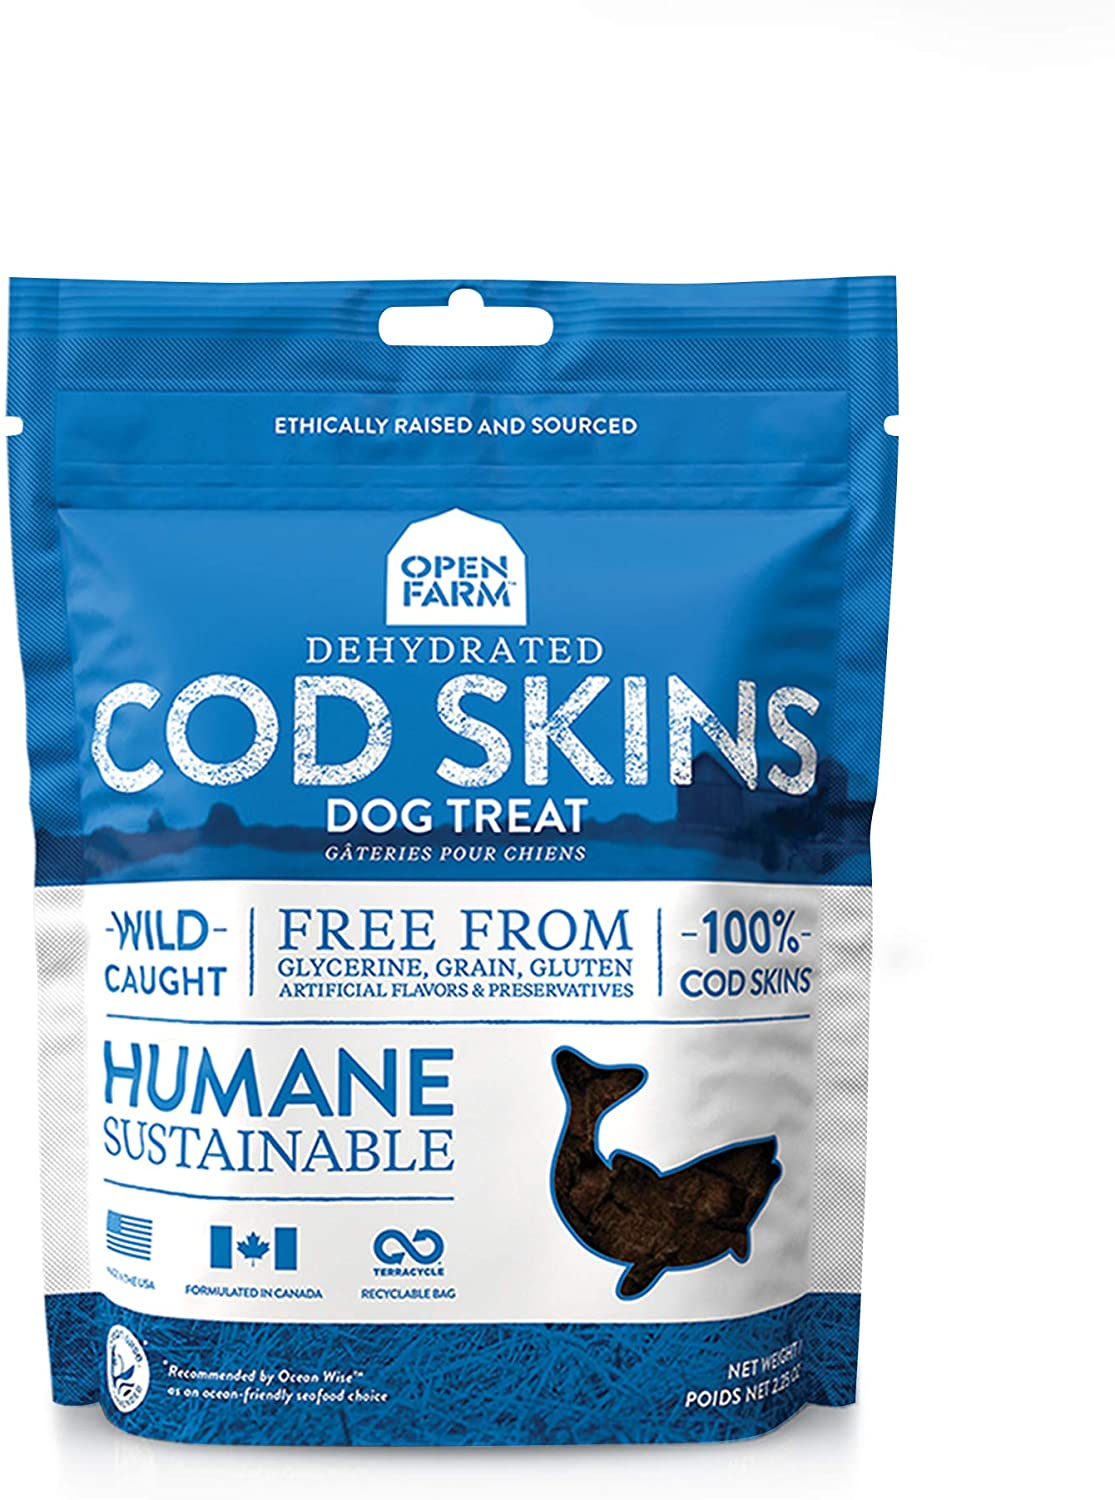 Open Farm Dehydrated Cod Skin Grain-Free Dog Treats, One-Ingredient Gently Cooked Pacific Fish Recipe with No Artificial Flavors or Preservatives, 2.25 oz